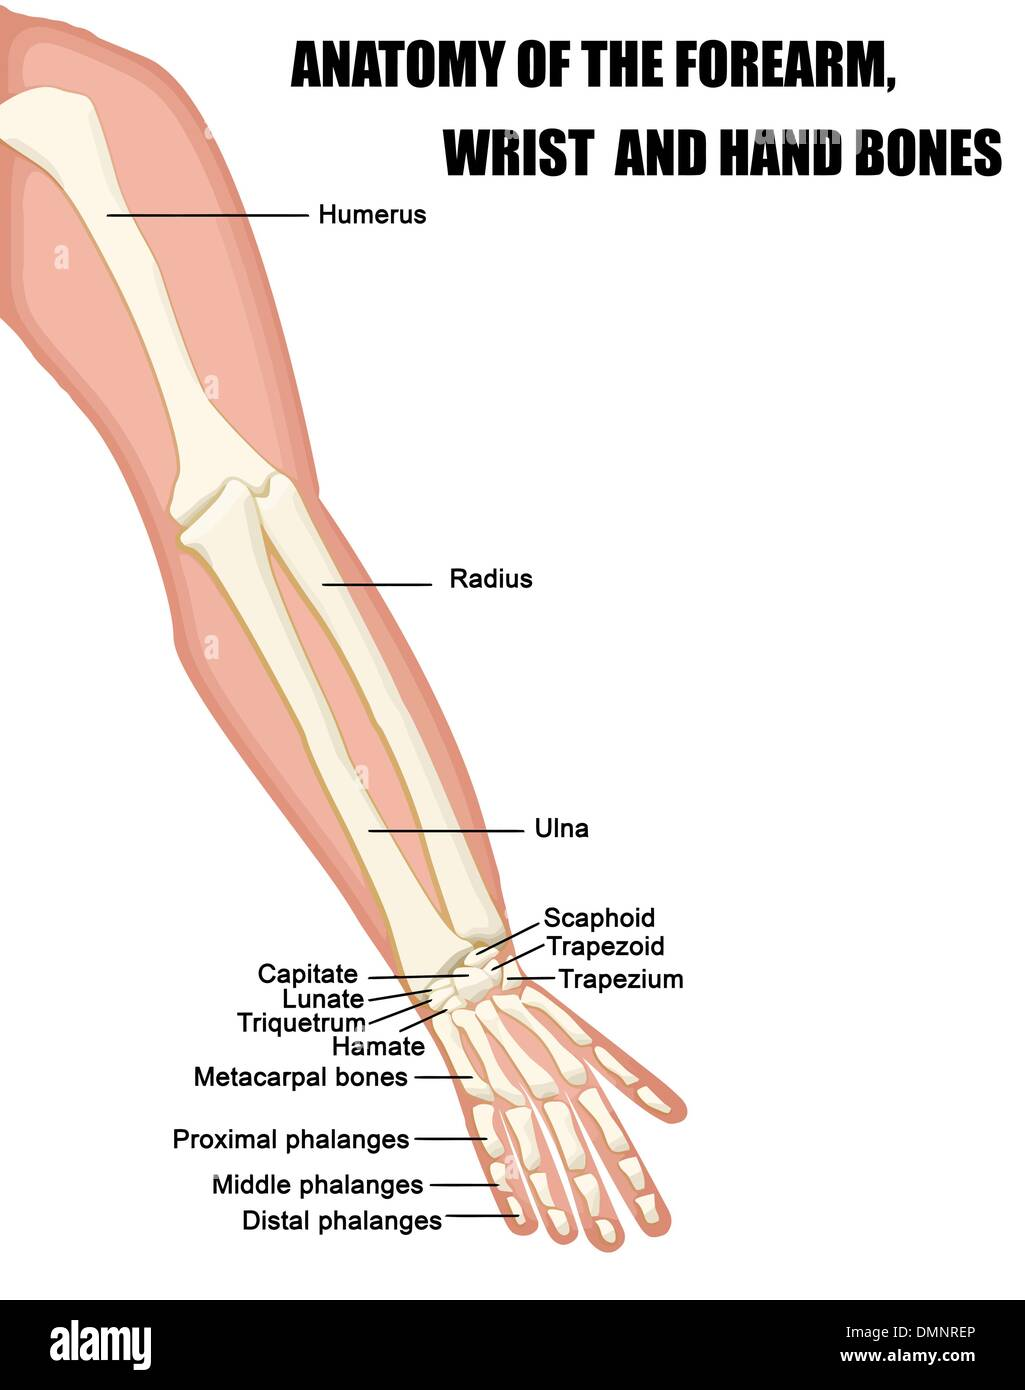 Anatomy Of The Forearm Wrist And Hand Bones Stock Vector Art